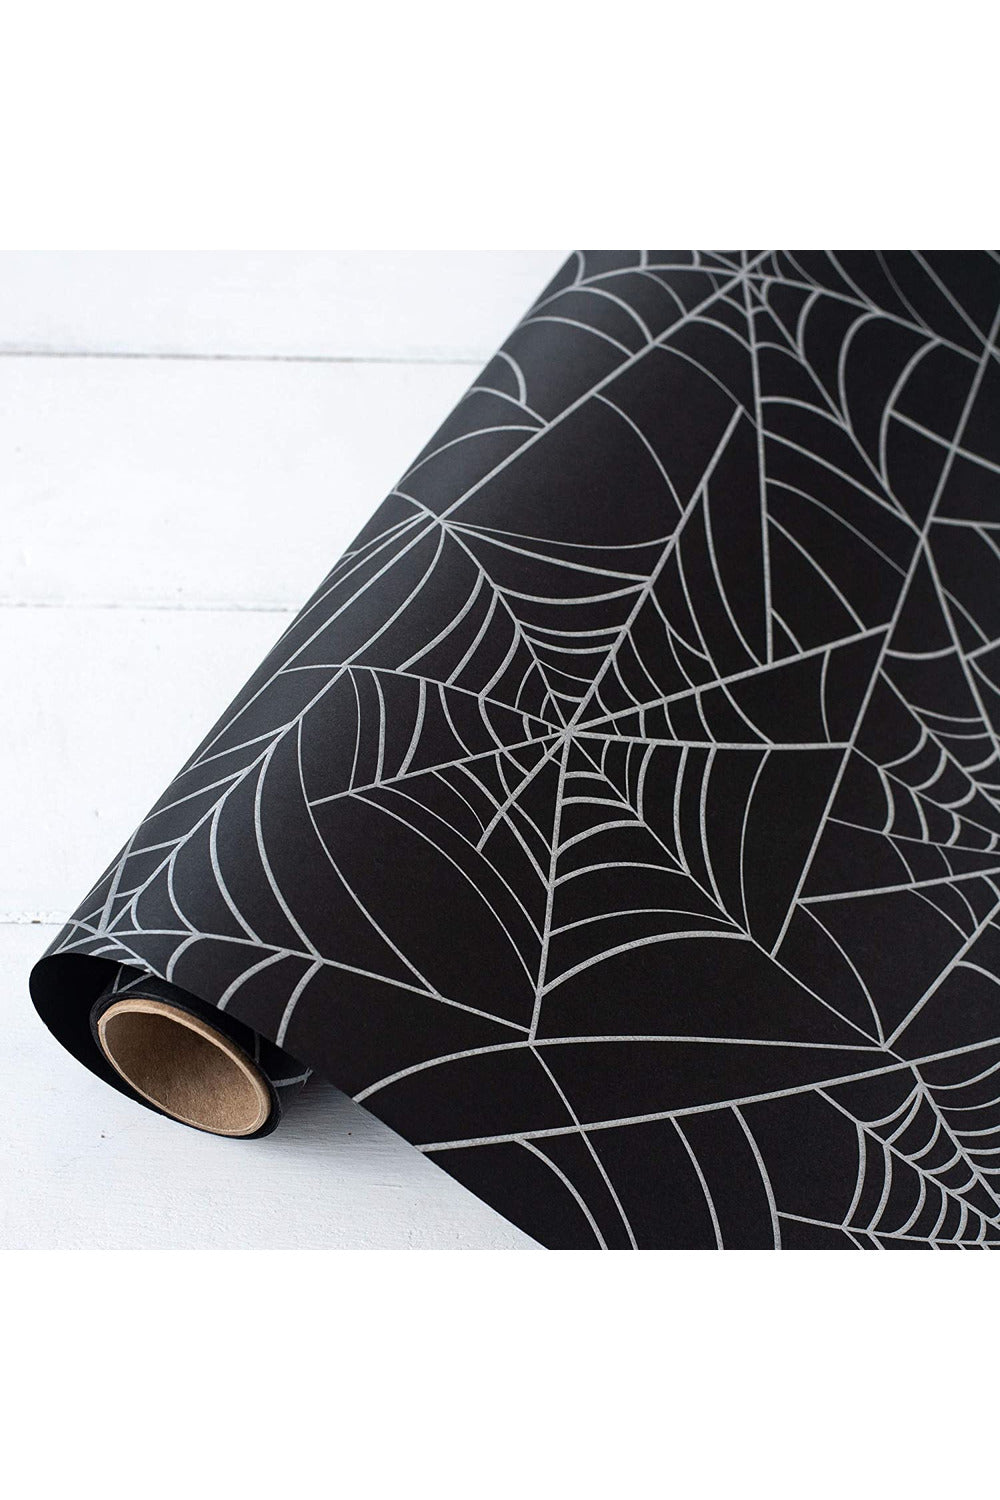 Hester and Cook Spider Web Table Runner